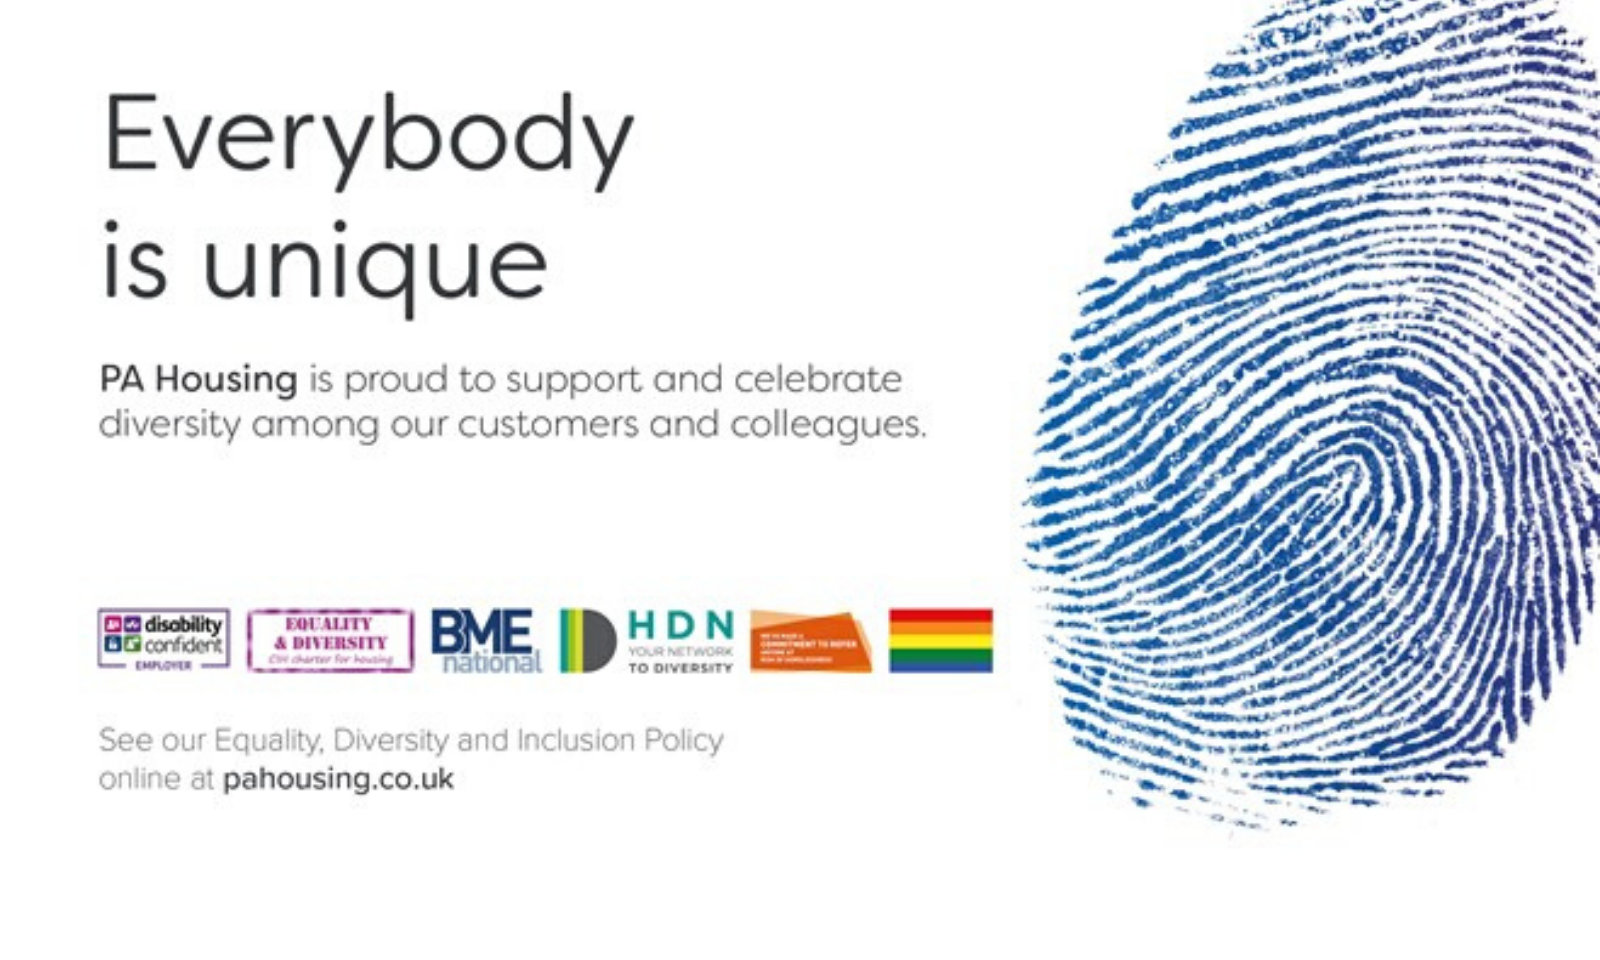 Everybody is unique, and we'e committed to promoting diversity, inclusion, and a culture that actively values difference. This commitment is promoted by our Board and applies to all customers, employees and other stakeholders, such as contractors, volunteers and partners. We believe that everyone is entitled to respect and dignity and we are committed to building an environment where our employees, customers, contractors and visitors are treated in this way.